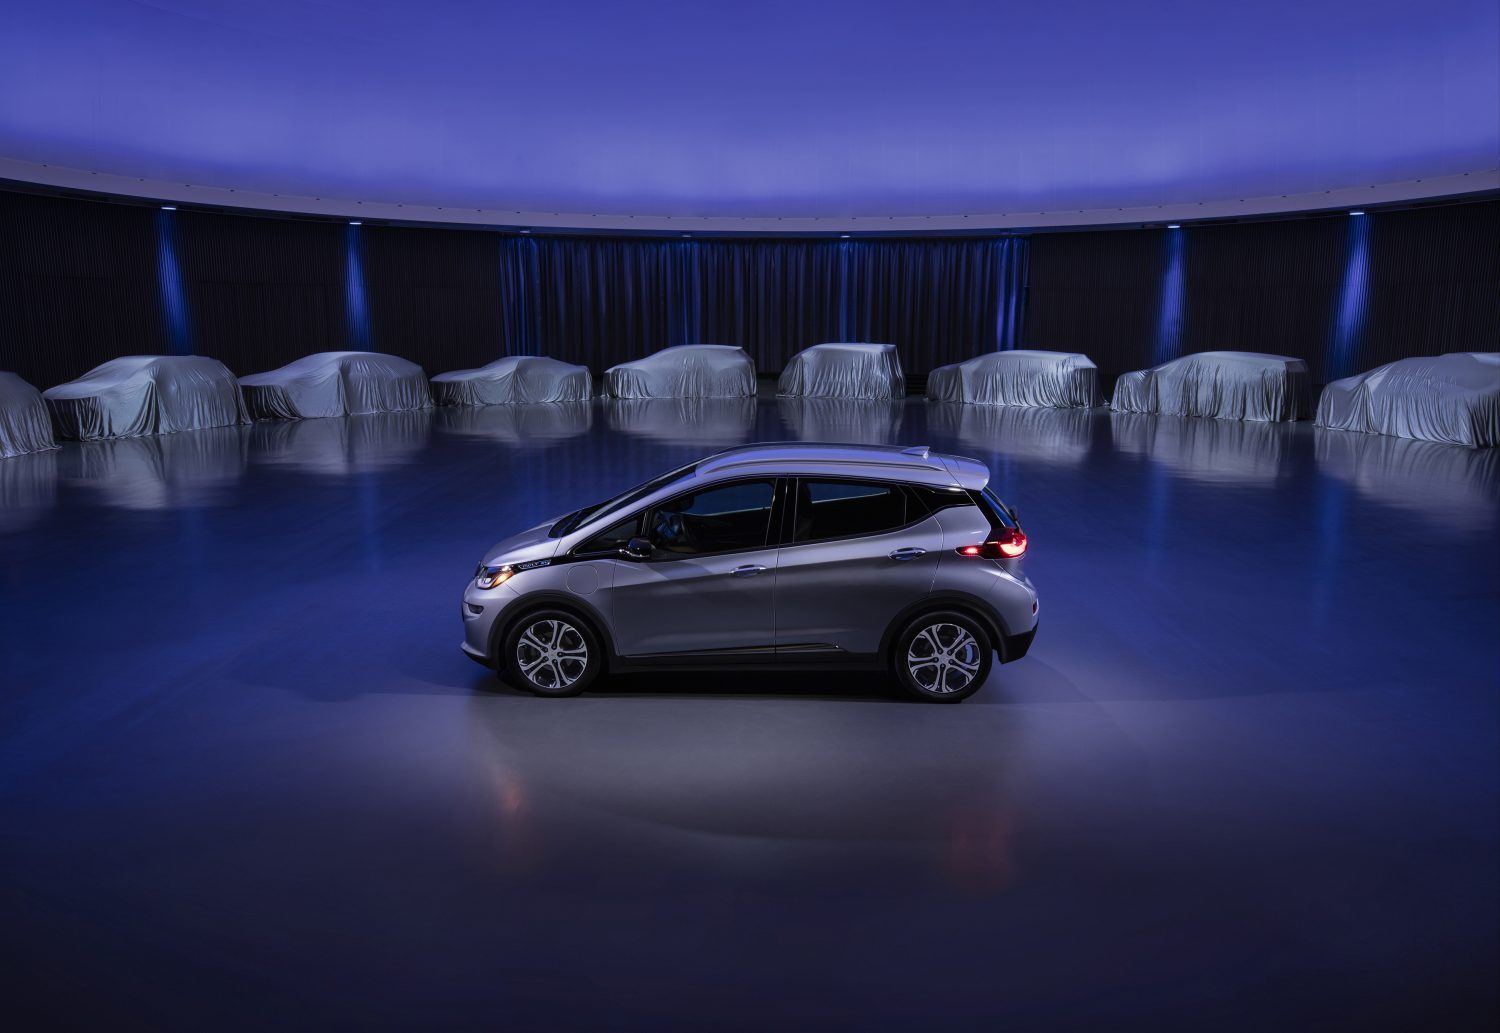 General Motors outlined an all-electric path to zero emissions with at least 20 new all-electric vehicles by 2023.